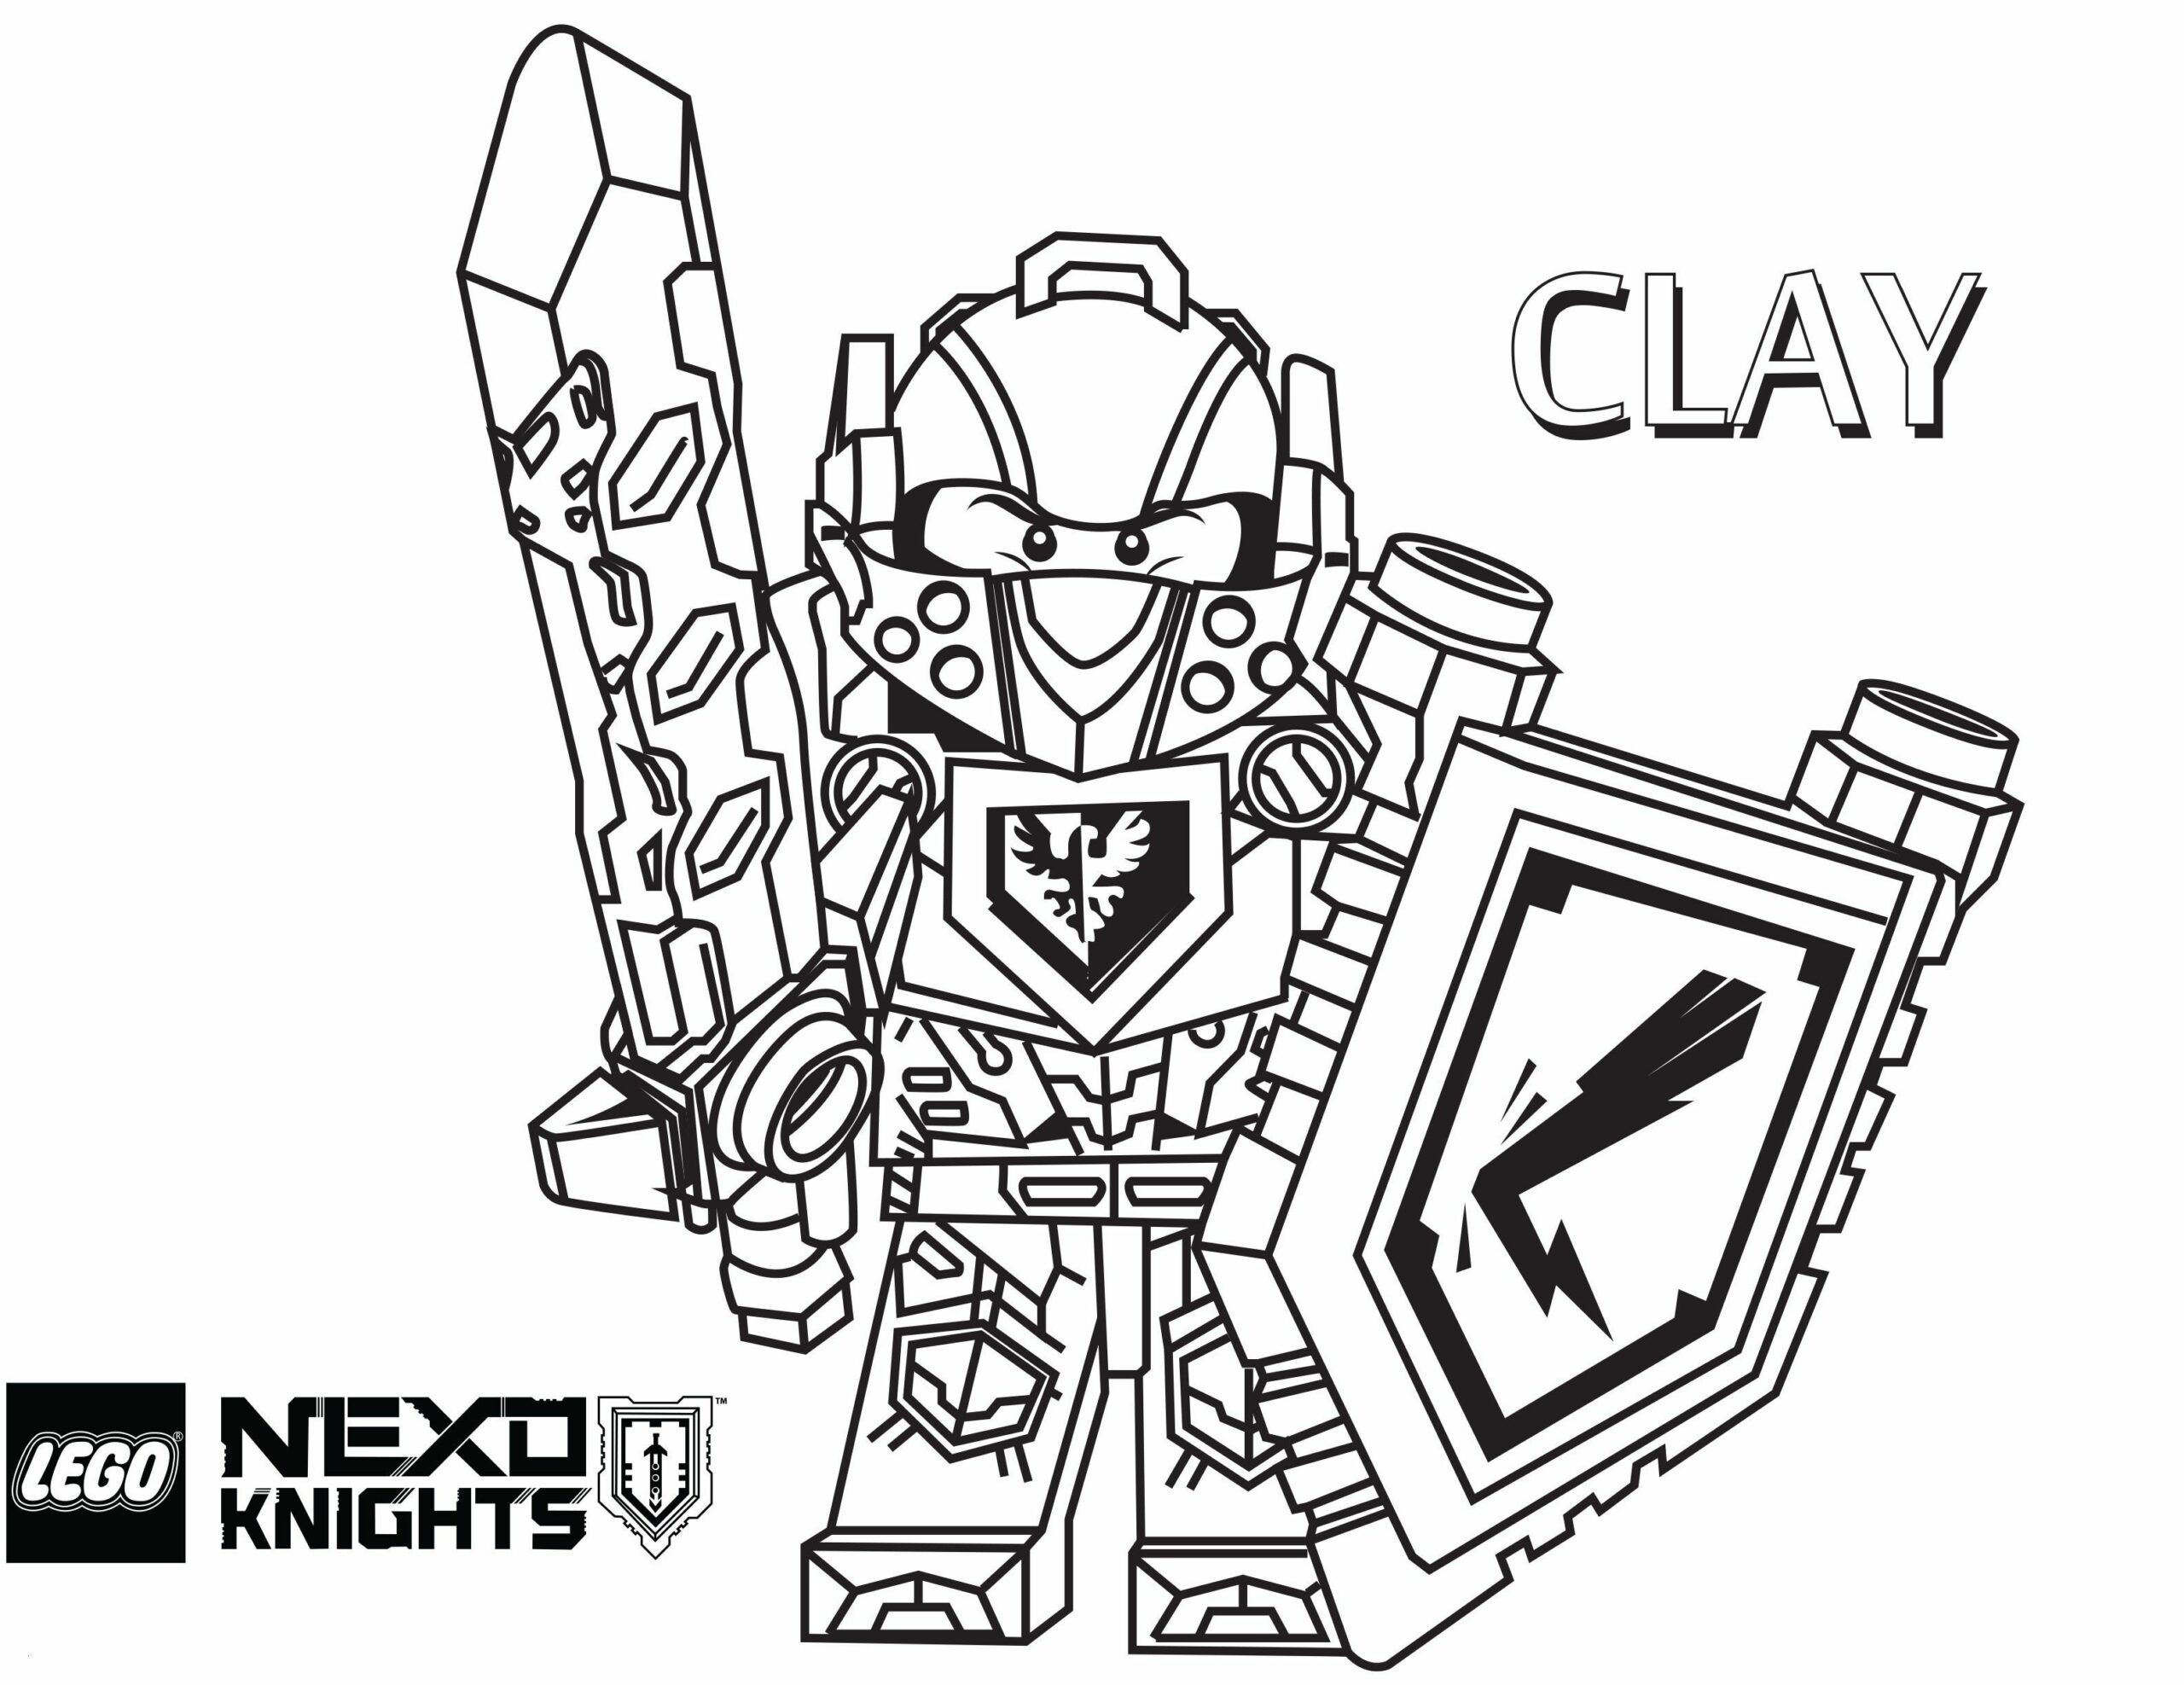 Lego Nexo Knights Coloring Pages Clay